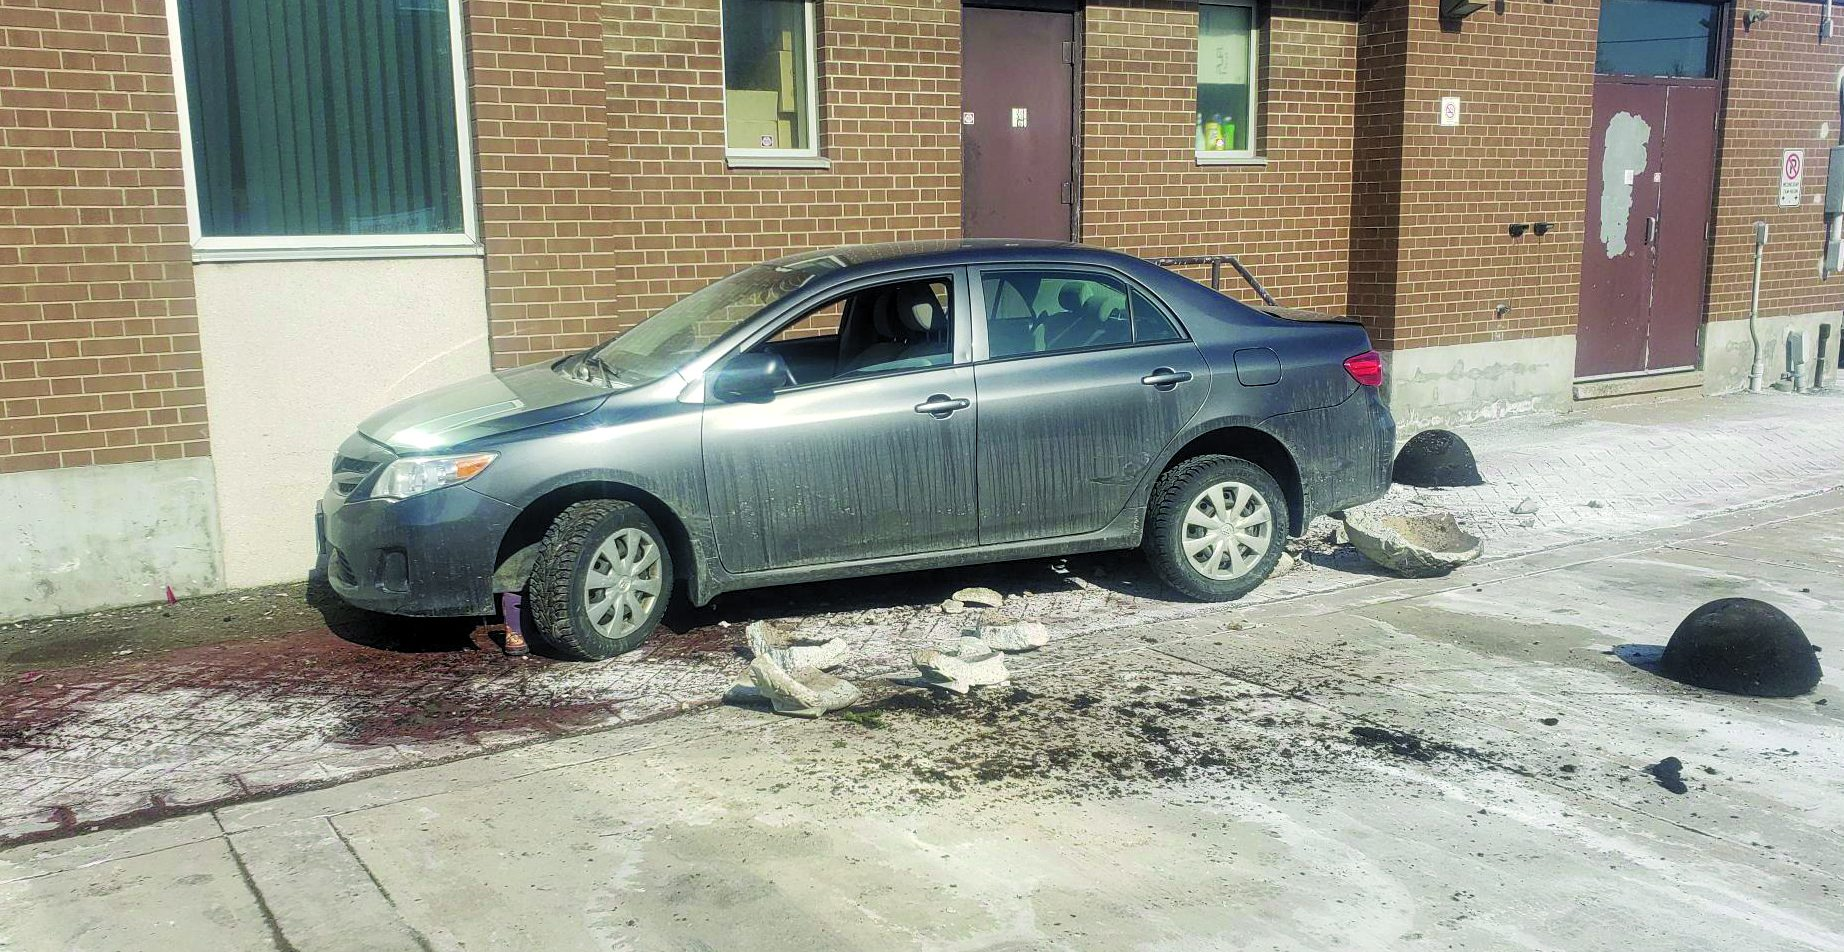 Car at edge of building with broken cement flower planters behind it and child's boot in wheel well